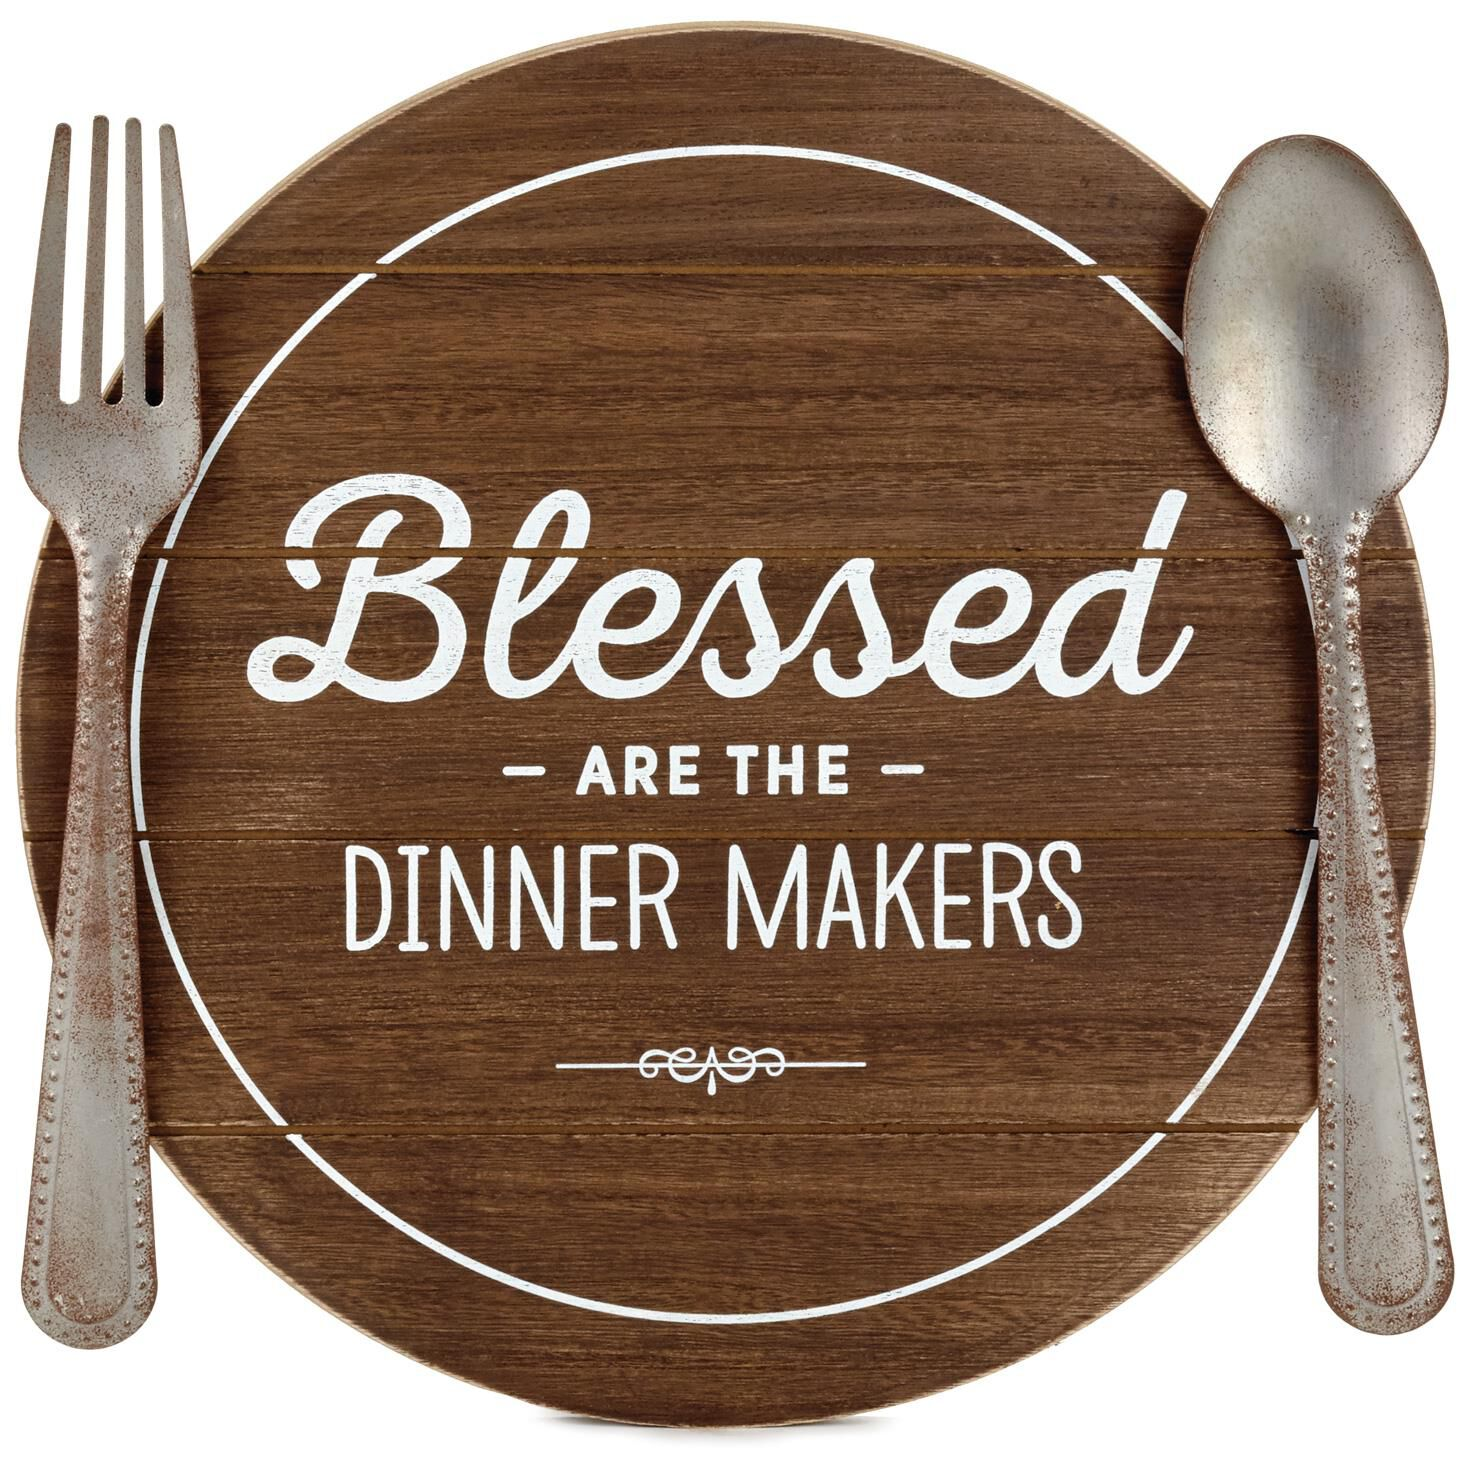 Blessed dinner makers rustic wood quote sign plaques signs blessed dinner makers rustic wood quote sign plaques signs hallmark stopboris Images